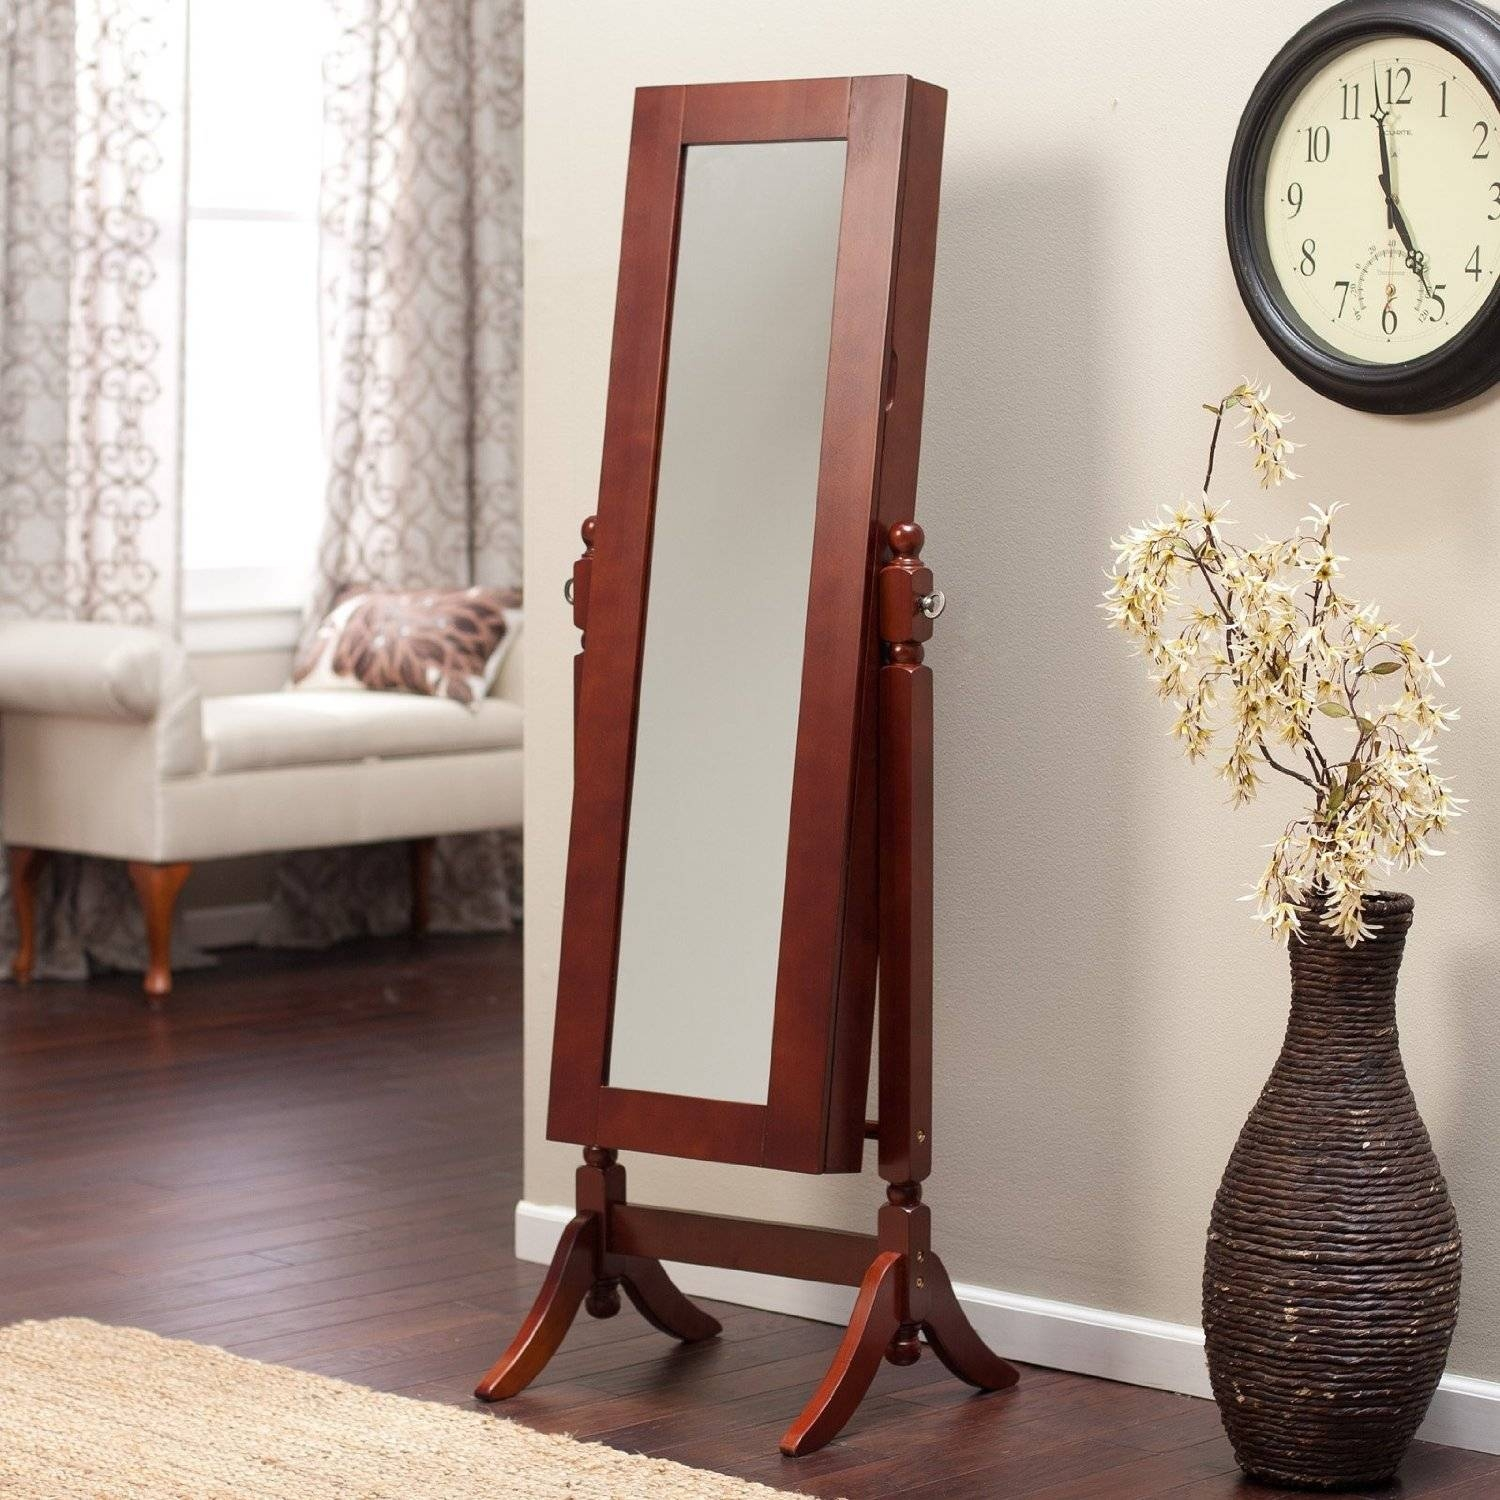 Furniture: Cherry Full Length Mirror Jewelry Armoire With Drawers regarding Full Length Free Standing Mirrors With Drawer (Image 19 of 25)